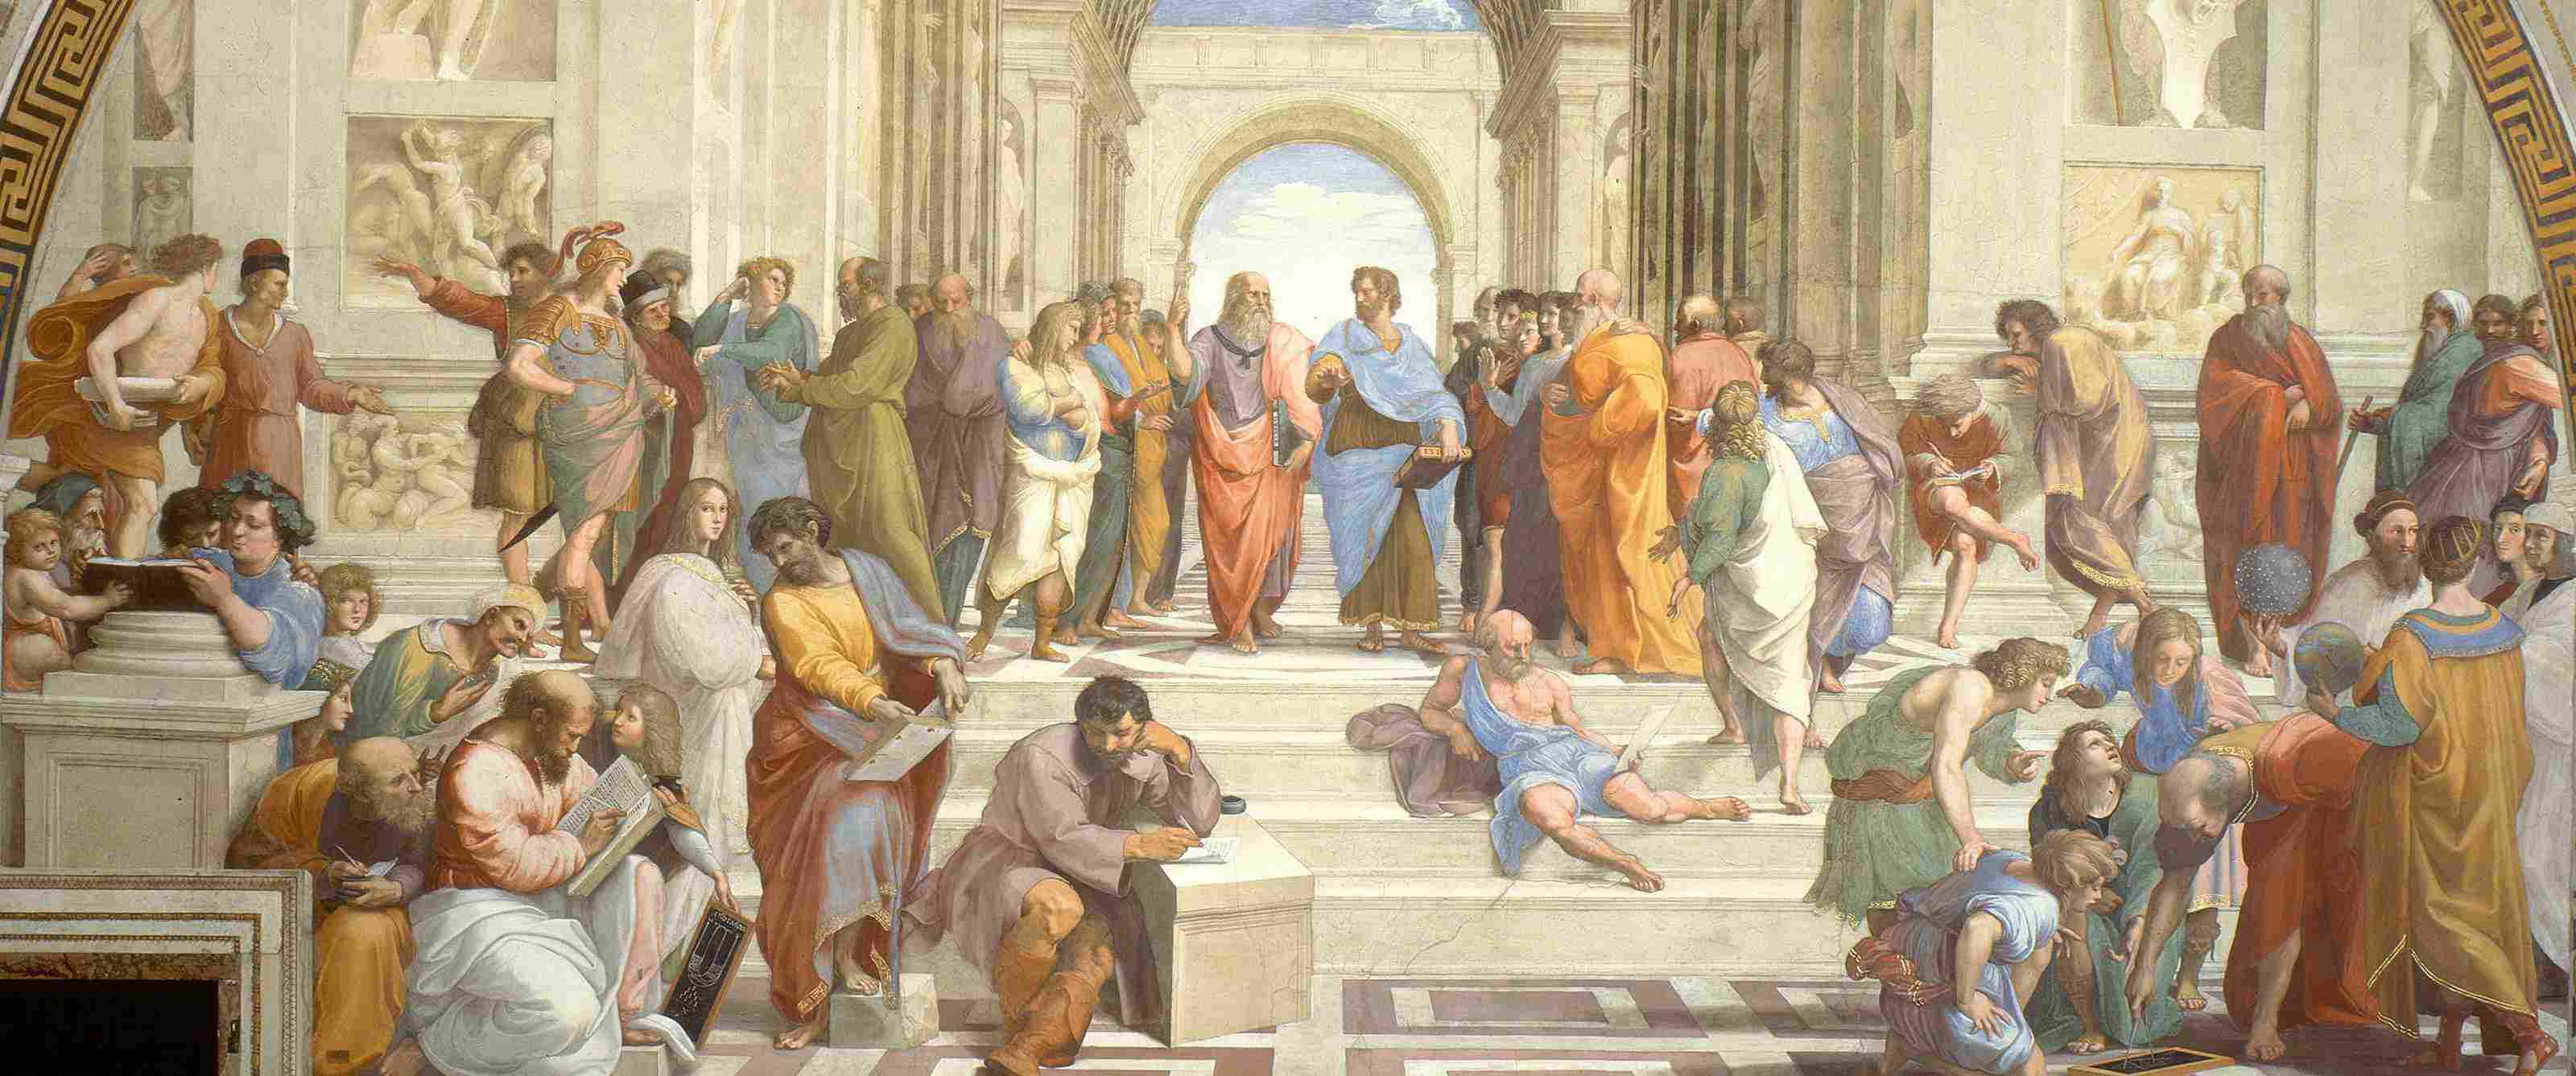 the-school-of-athens.jpg